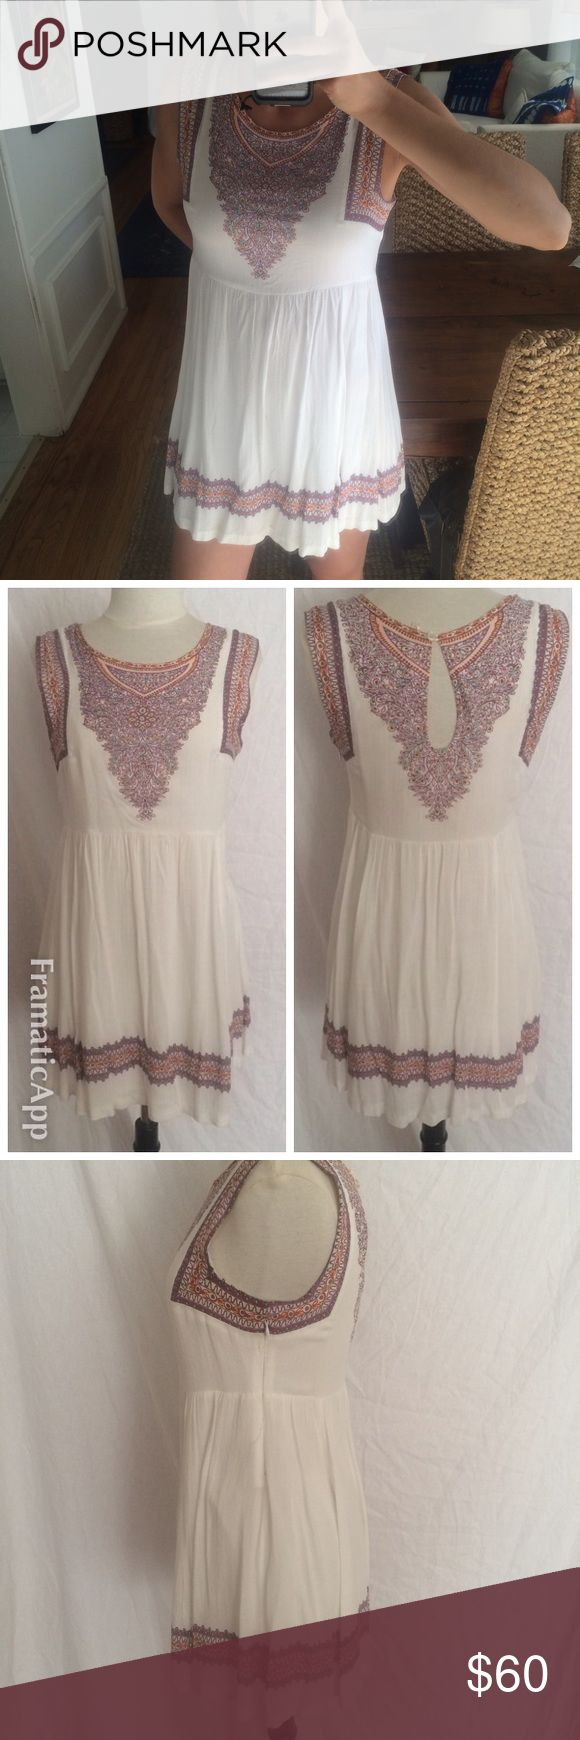 Free People White Dress Free People white dress with colorful design. It zips up the side and has a button clasp on the side. In good condition but there is a very small stain on the front as shown in the picture. Free People Dresses Mini